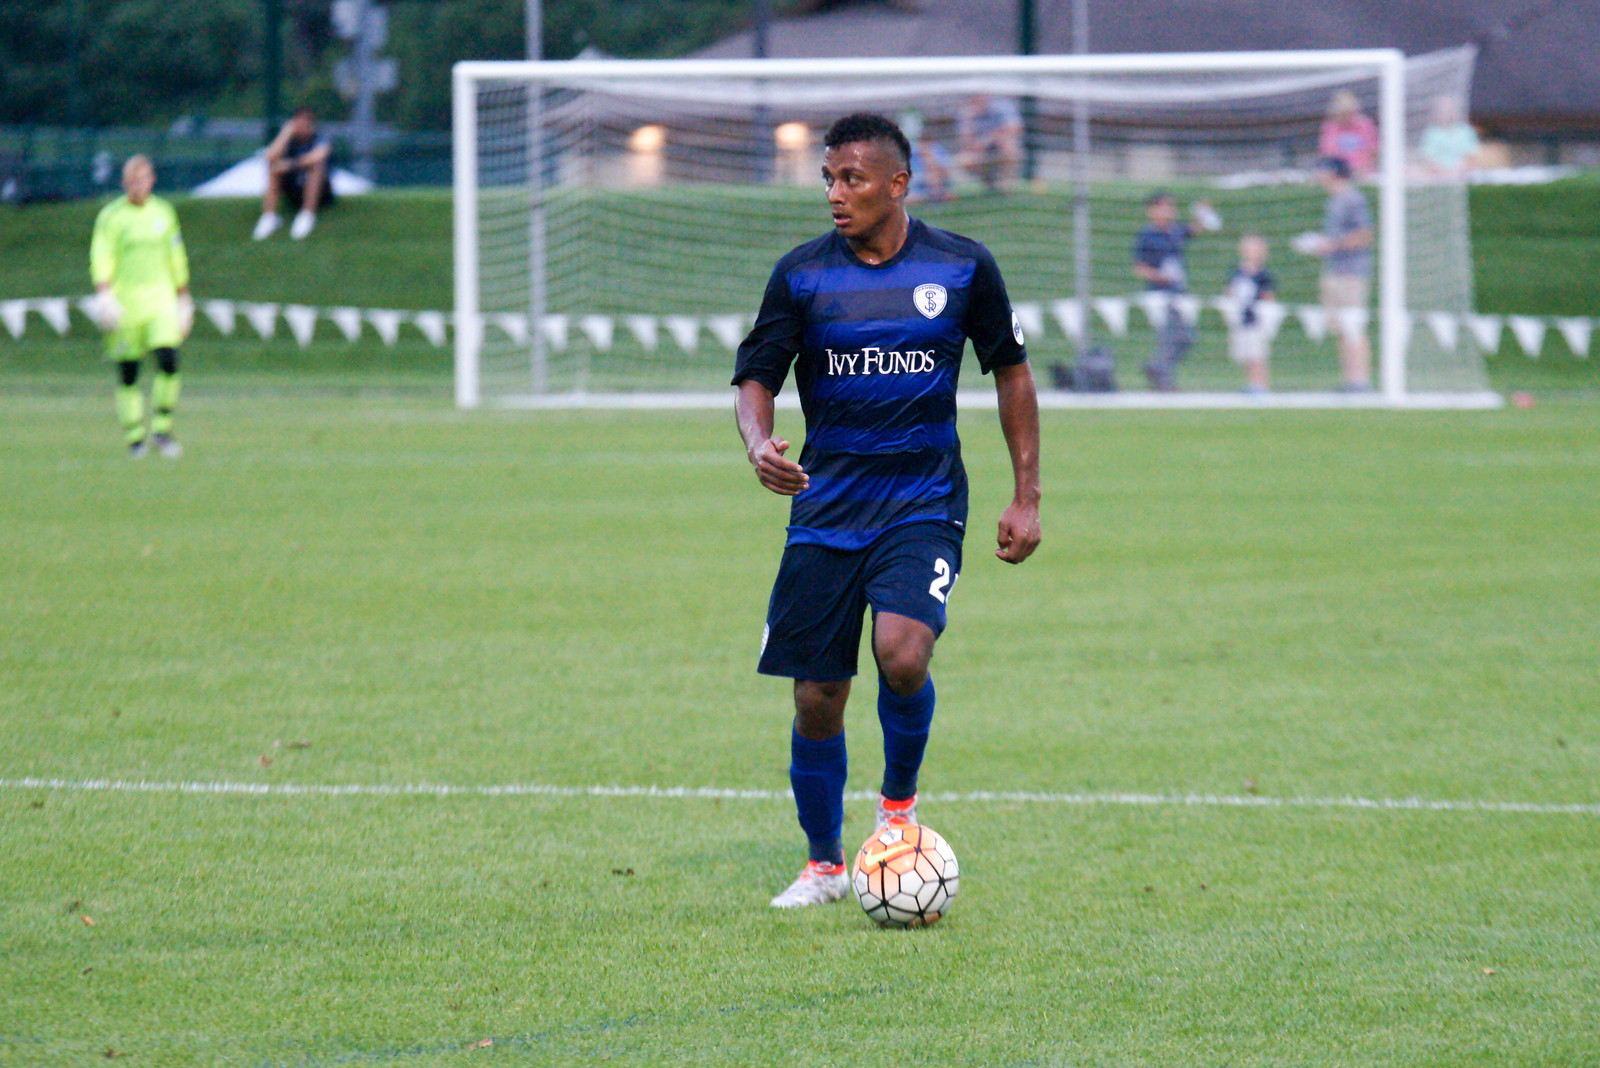 Ever Alvarado was loaned to Swope Park and has played the last two games